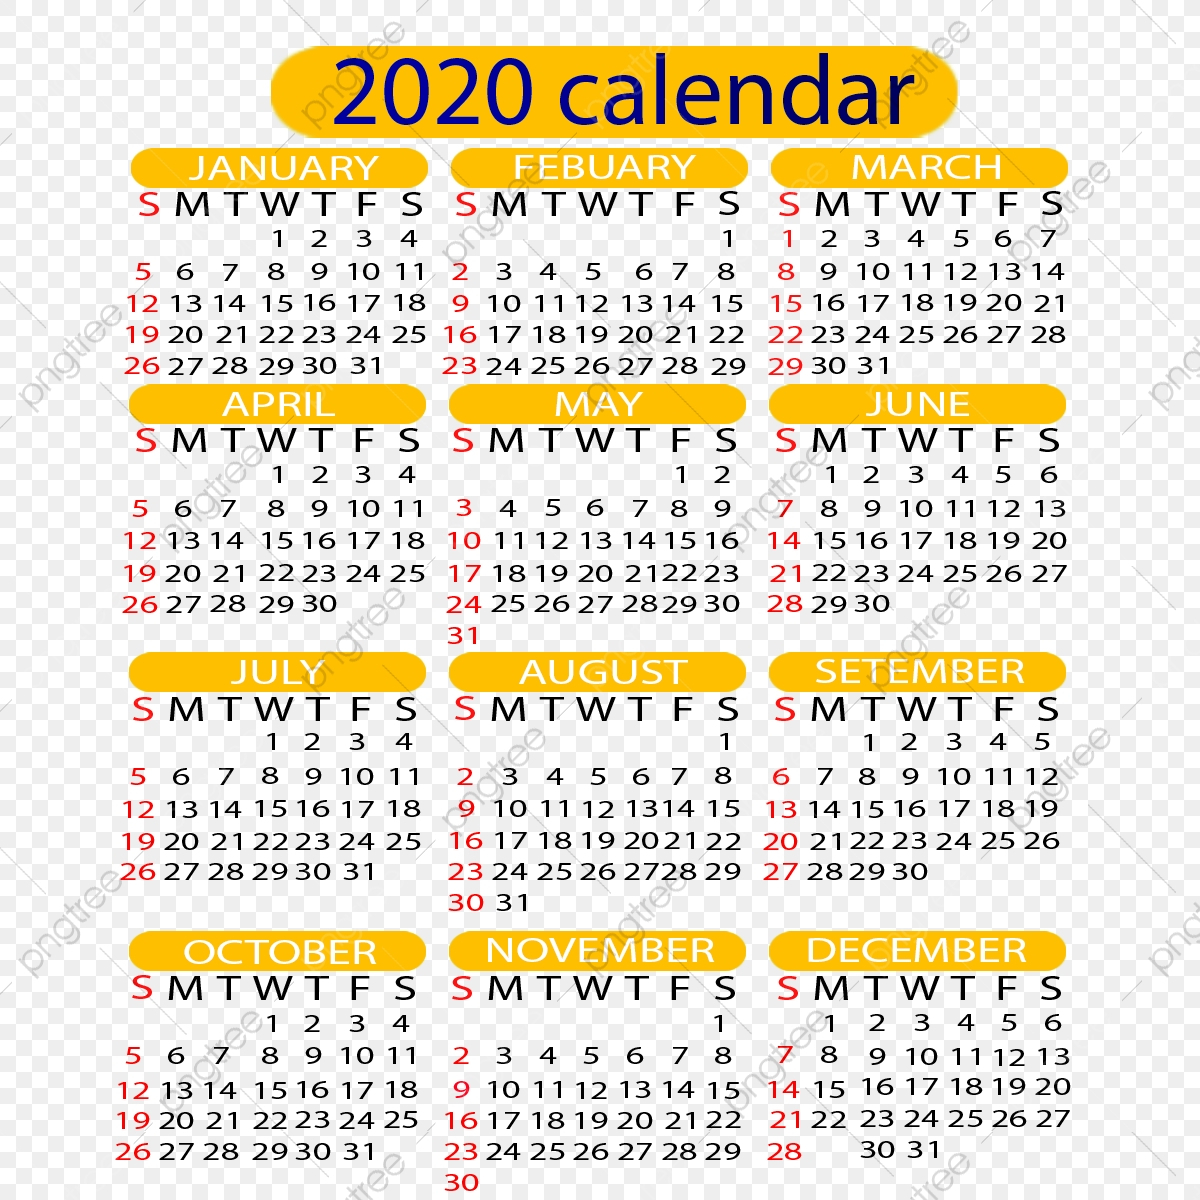 К 2020 Году Календарь, Календарь, Календарь, Год Png И Psd throughout 2020 Calendar Psd File